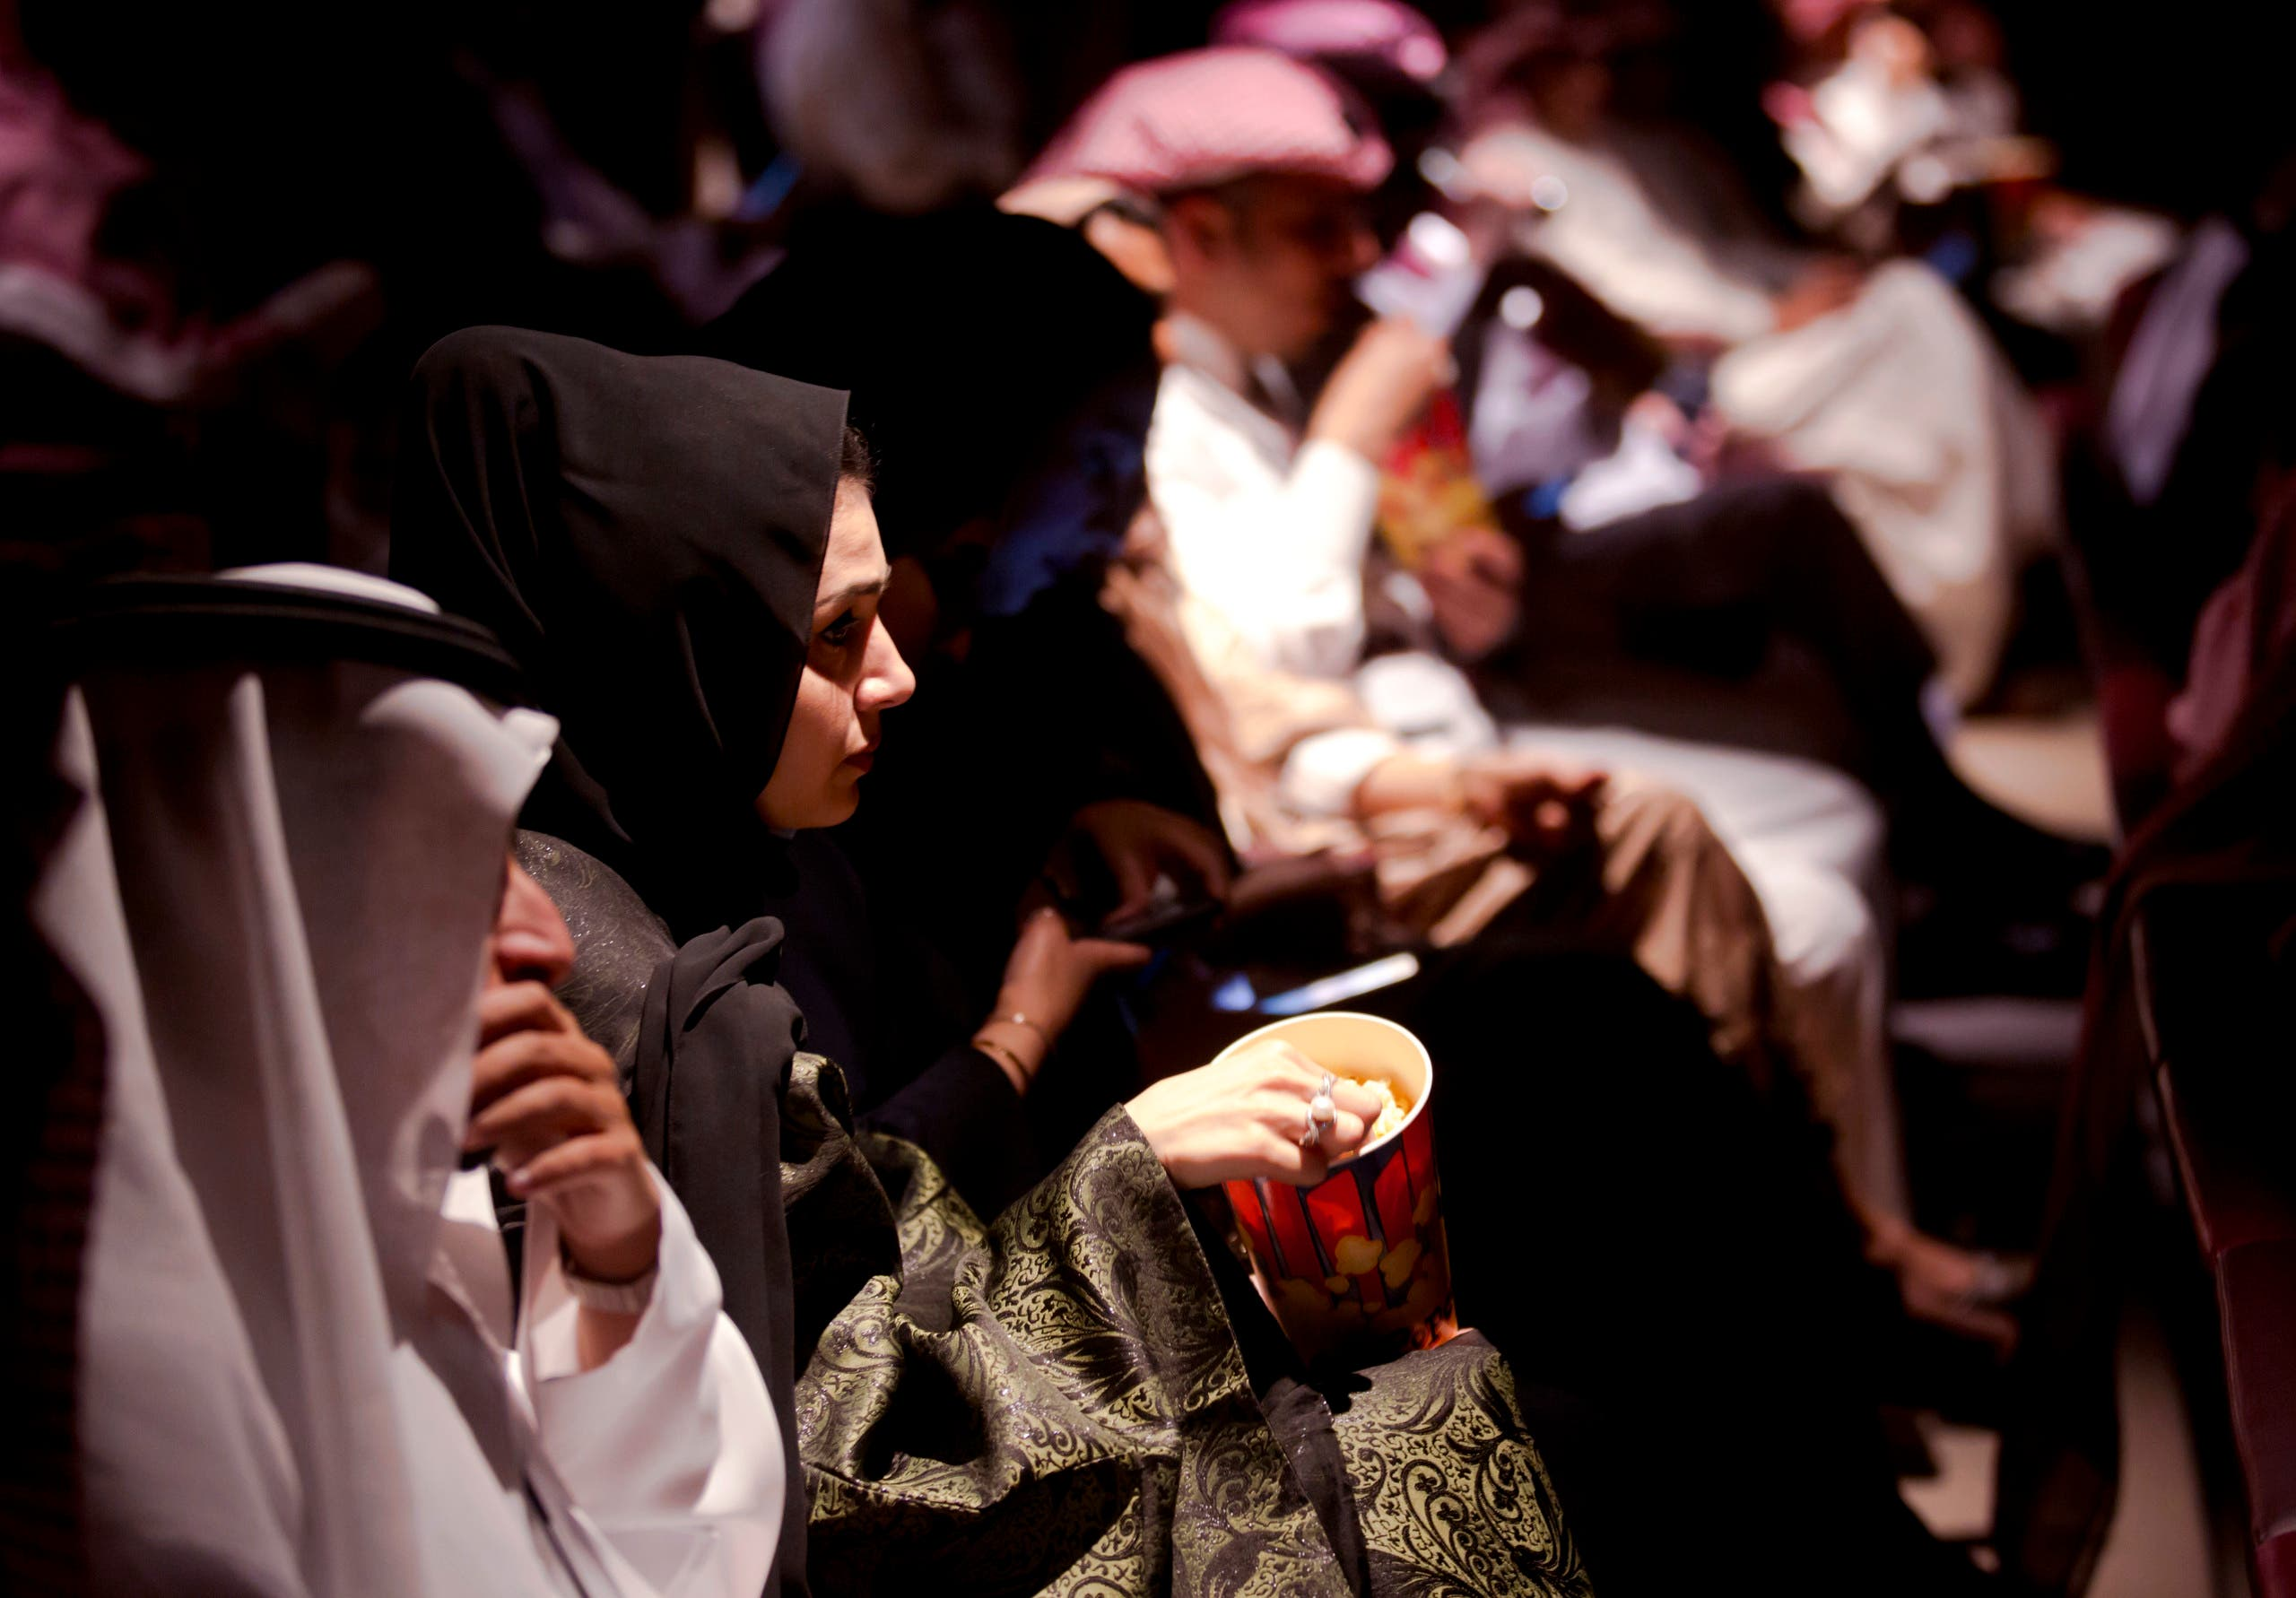 Visitors eat popcorn as they attend an invitation-only screening, at the King Abdullah Financial District Theater, in Riyadh, Saudi Arabia. (File photo: AP)